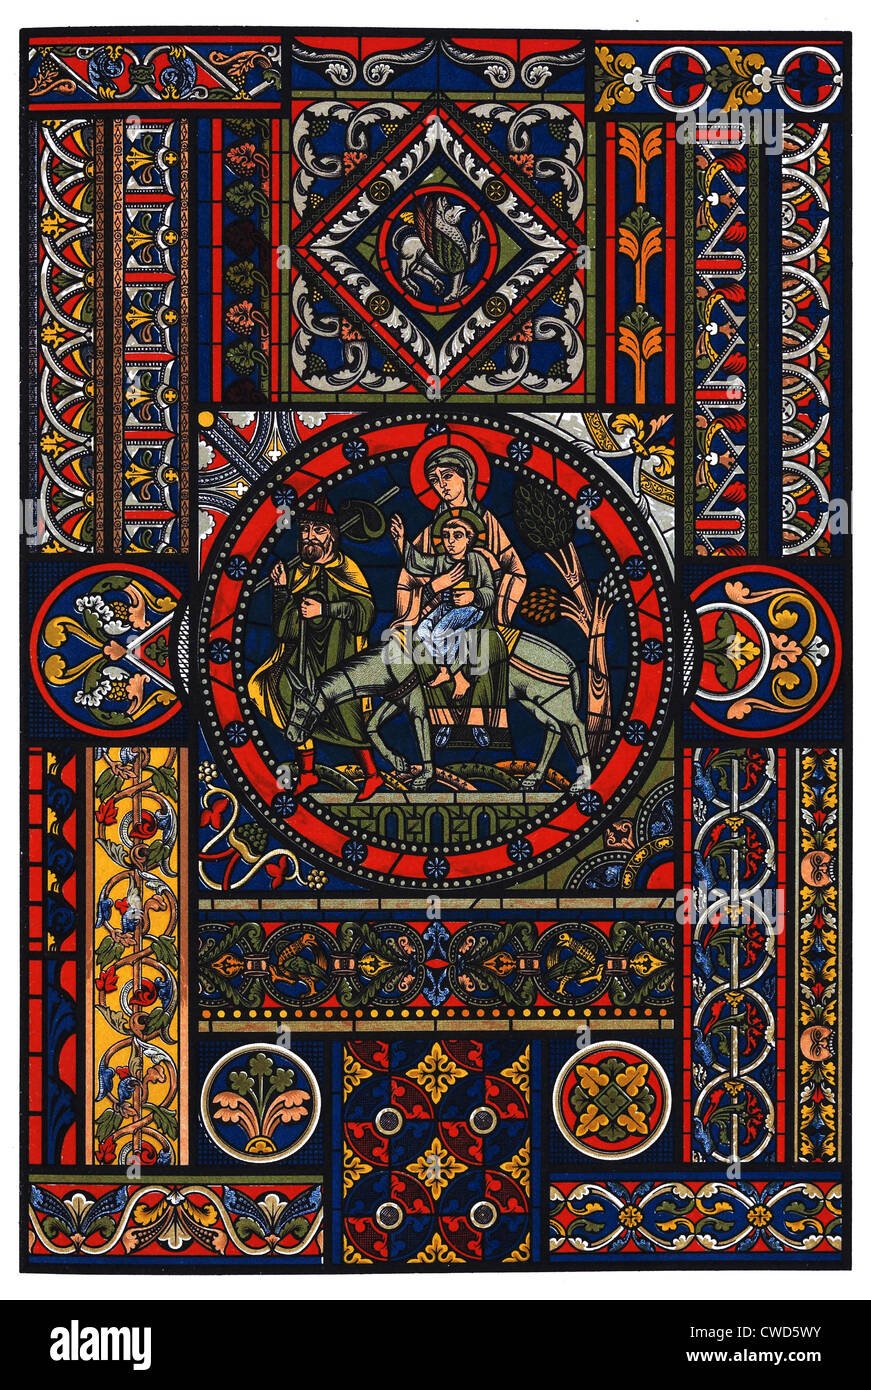 Romanesque Middle Ages-Gothic stained glass - Stock Image